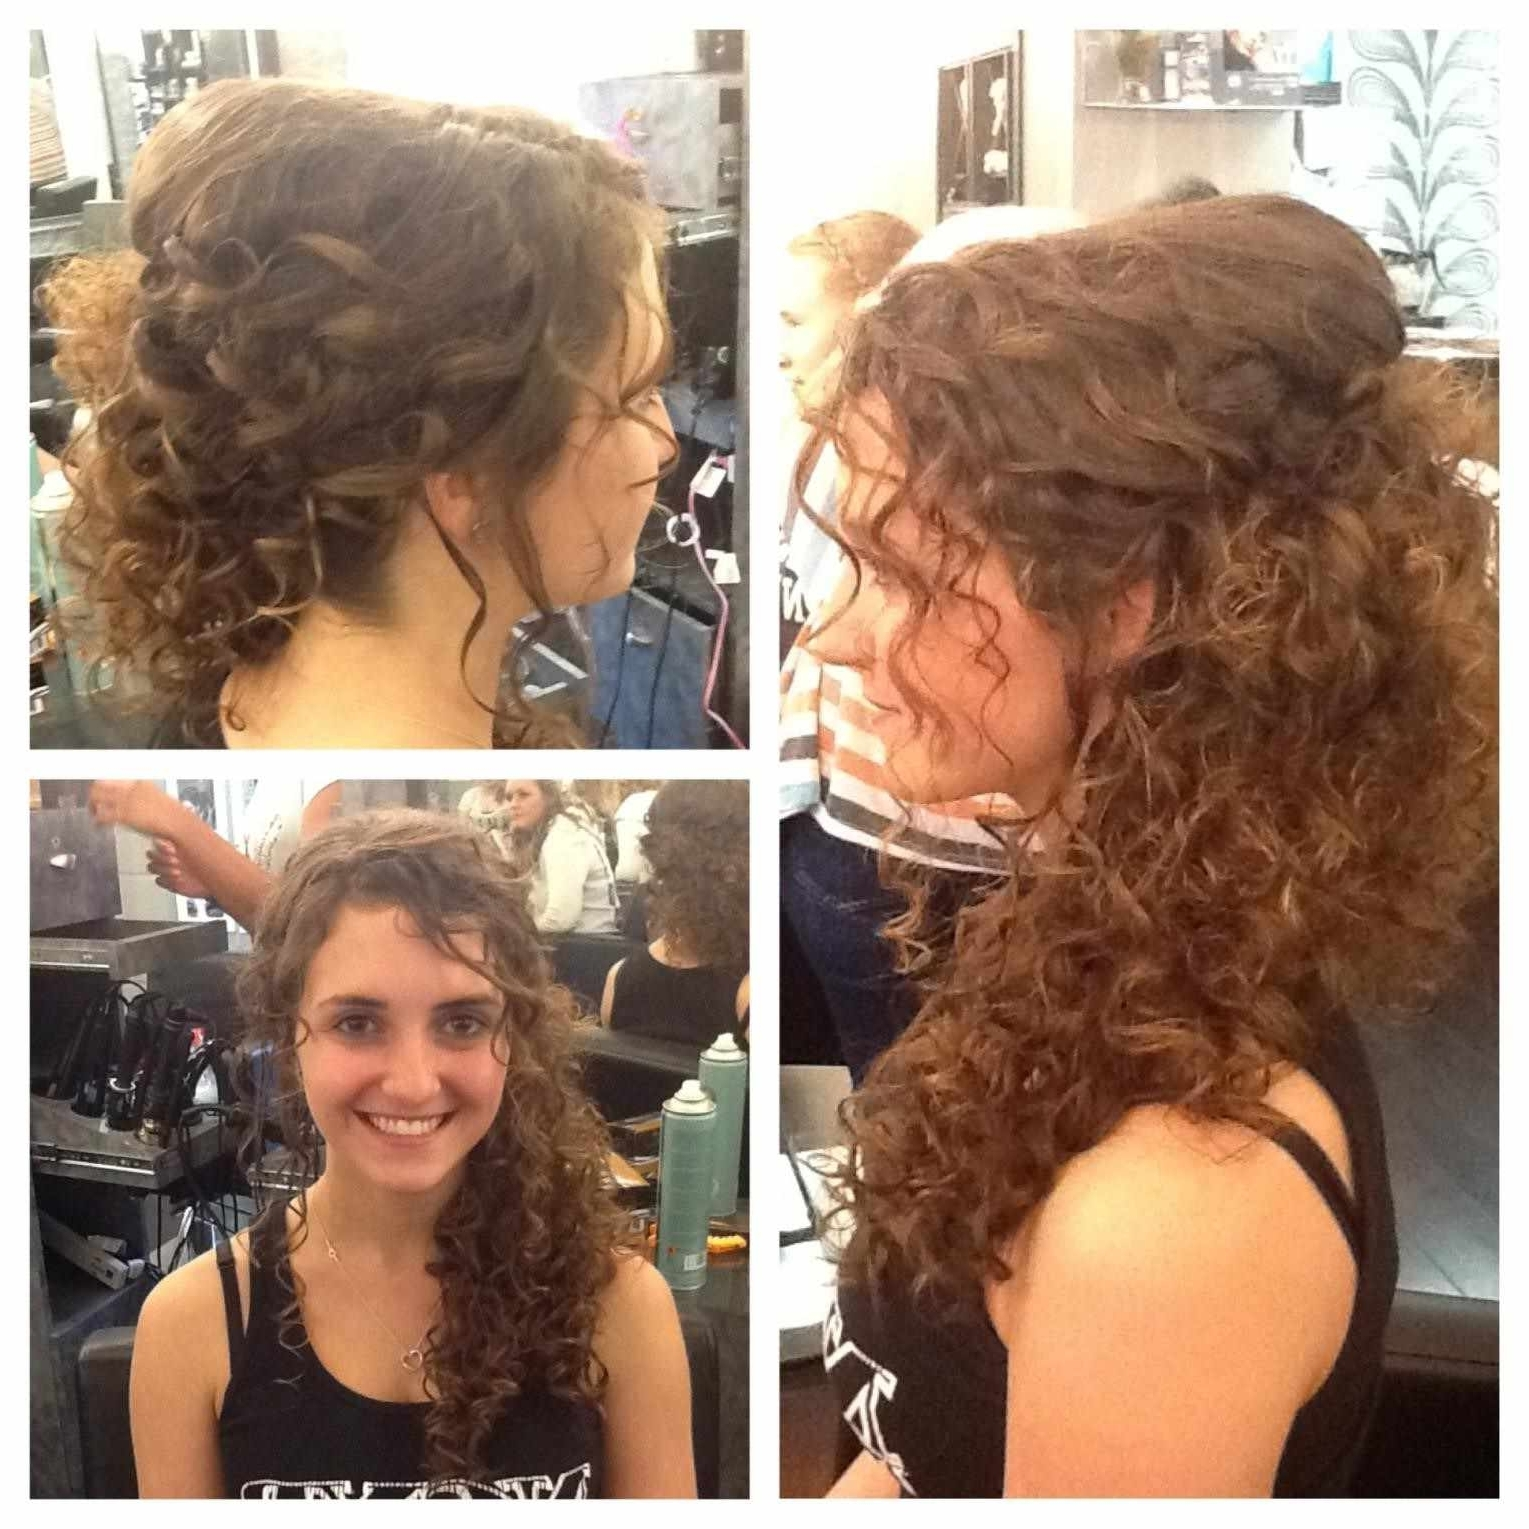 Big Day Azazie Casual Updos Homecoming Our Top List Updo And Casual With Casual Updos For Curly Hair (View 4 of 15)